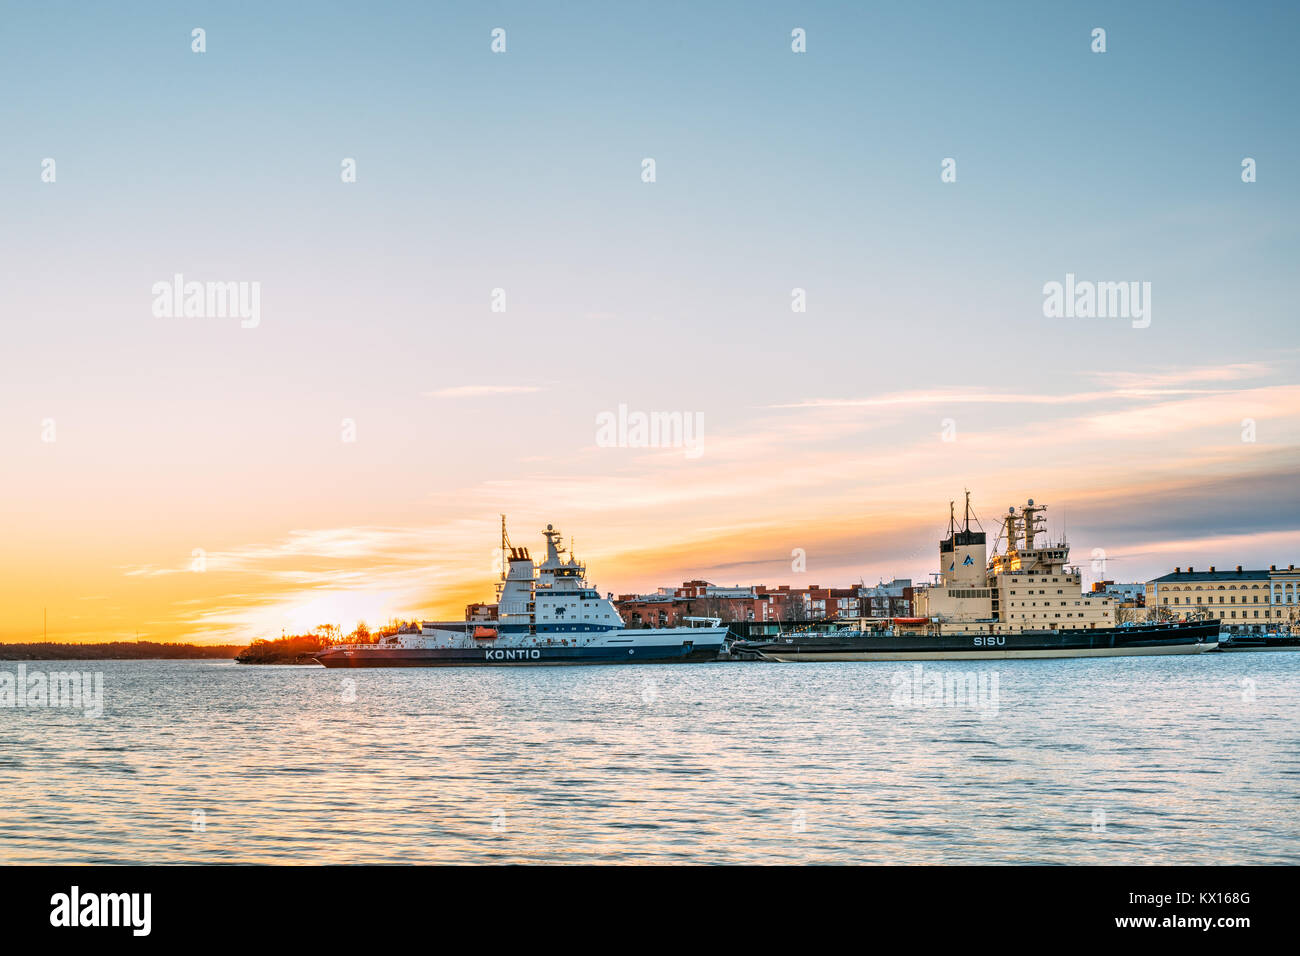 Helsinki, Finland. View Of Finnish State-owned Icebreaker Kontio And Finnish Icebreaker Of The Atle Class Sisu. - Stock Image